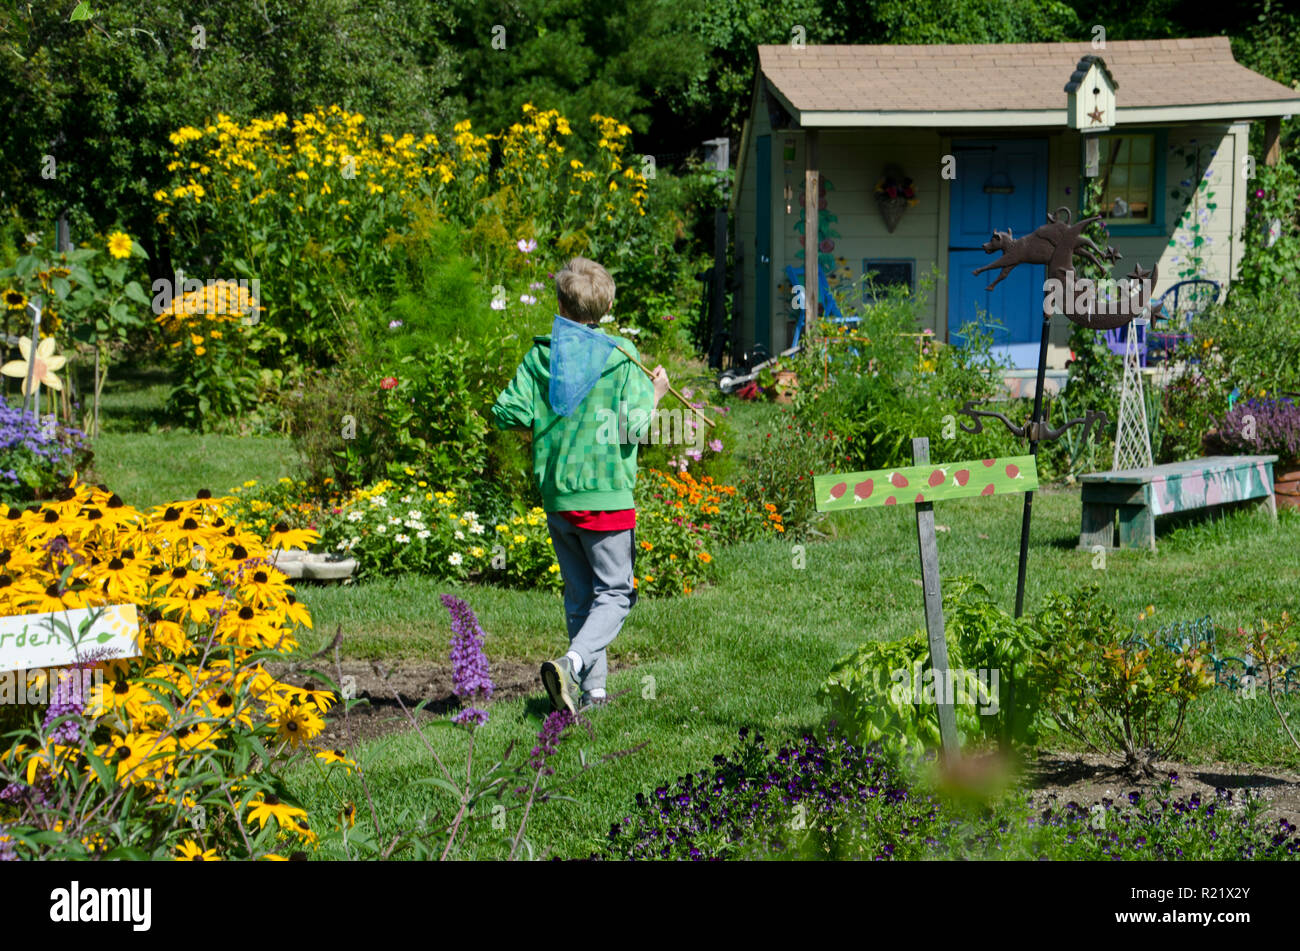 Young boy in colorful community garden with buttefly net on the hunt, Yarmouth, ME, USA - Stock Image